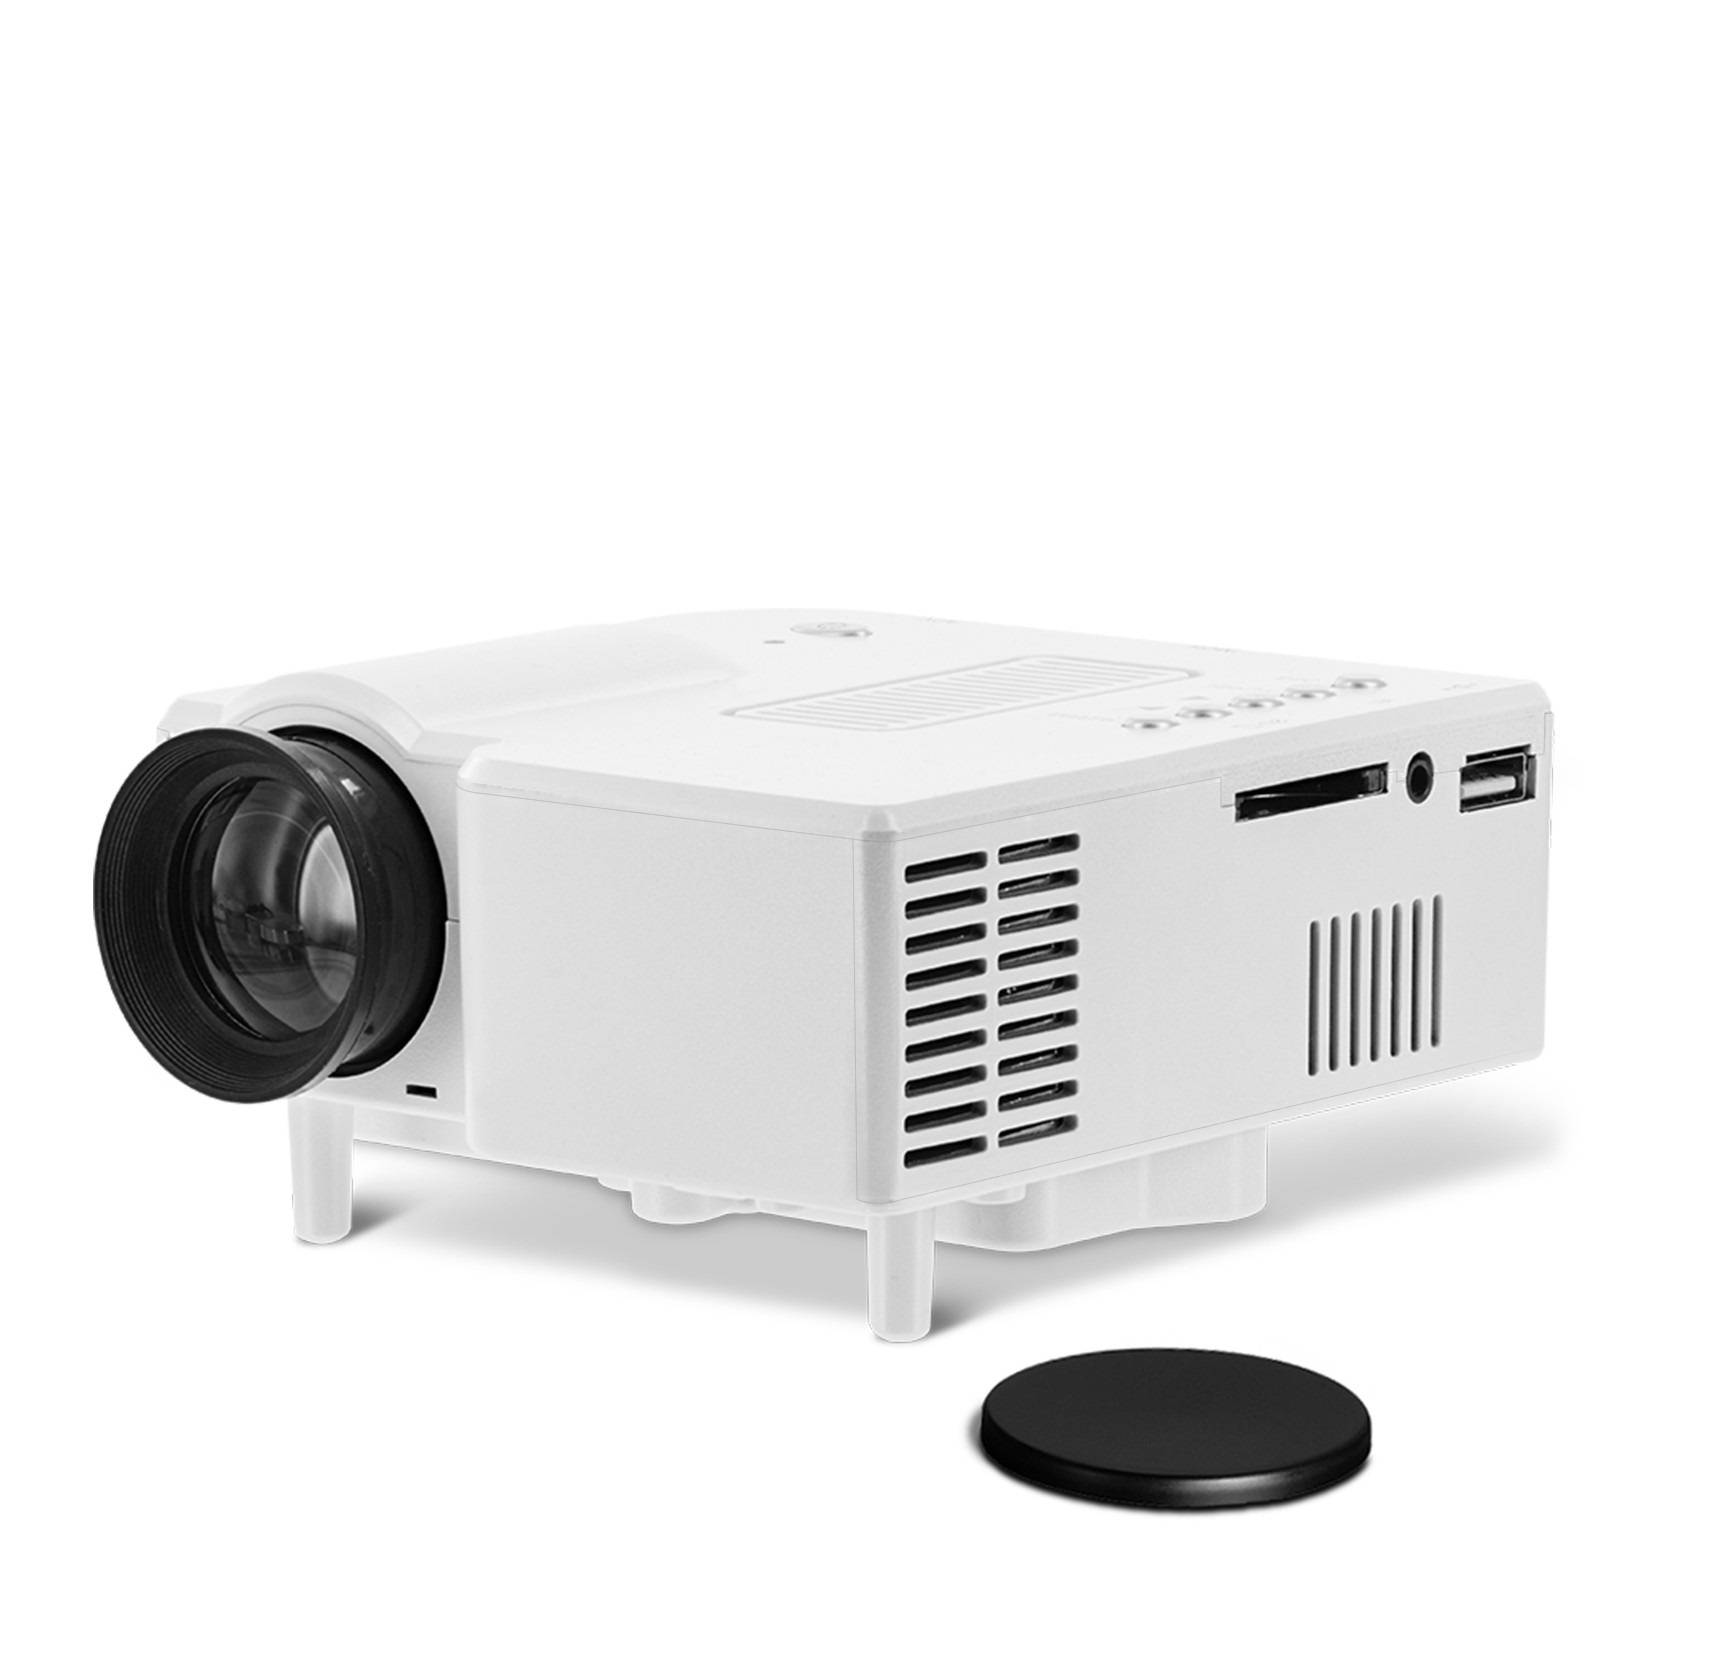 simplebeamer GP5S projector,Portable Children's toys mini UC28 Micro projector exceed game projector